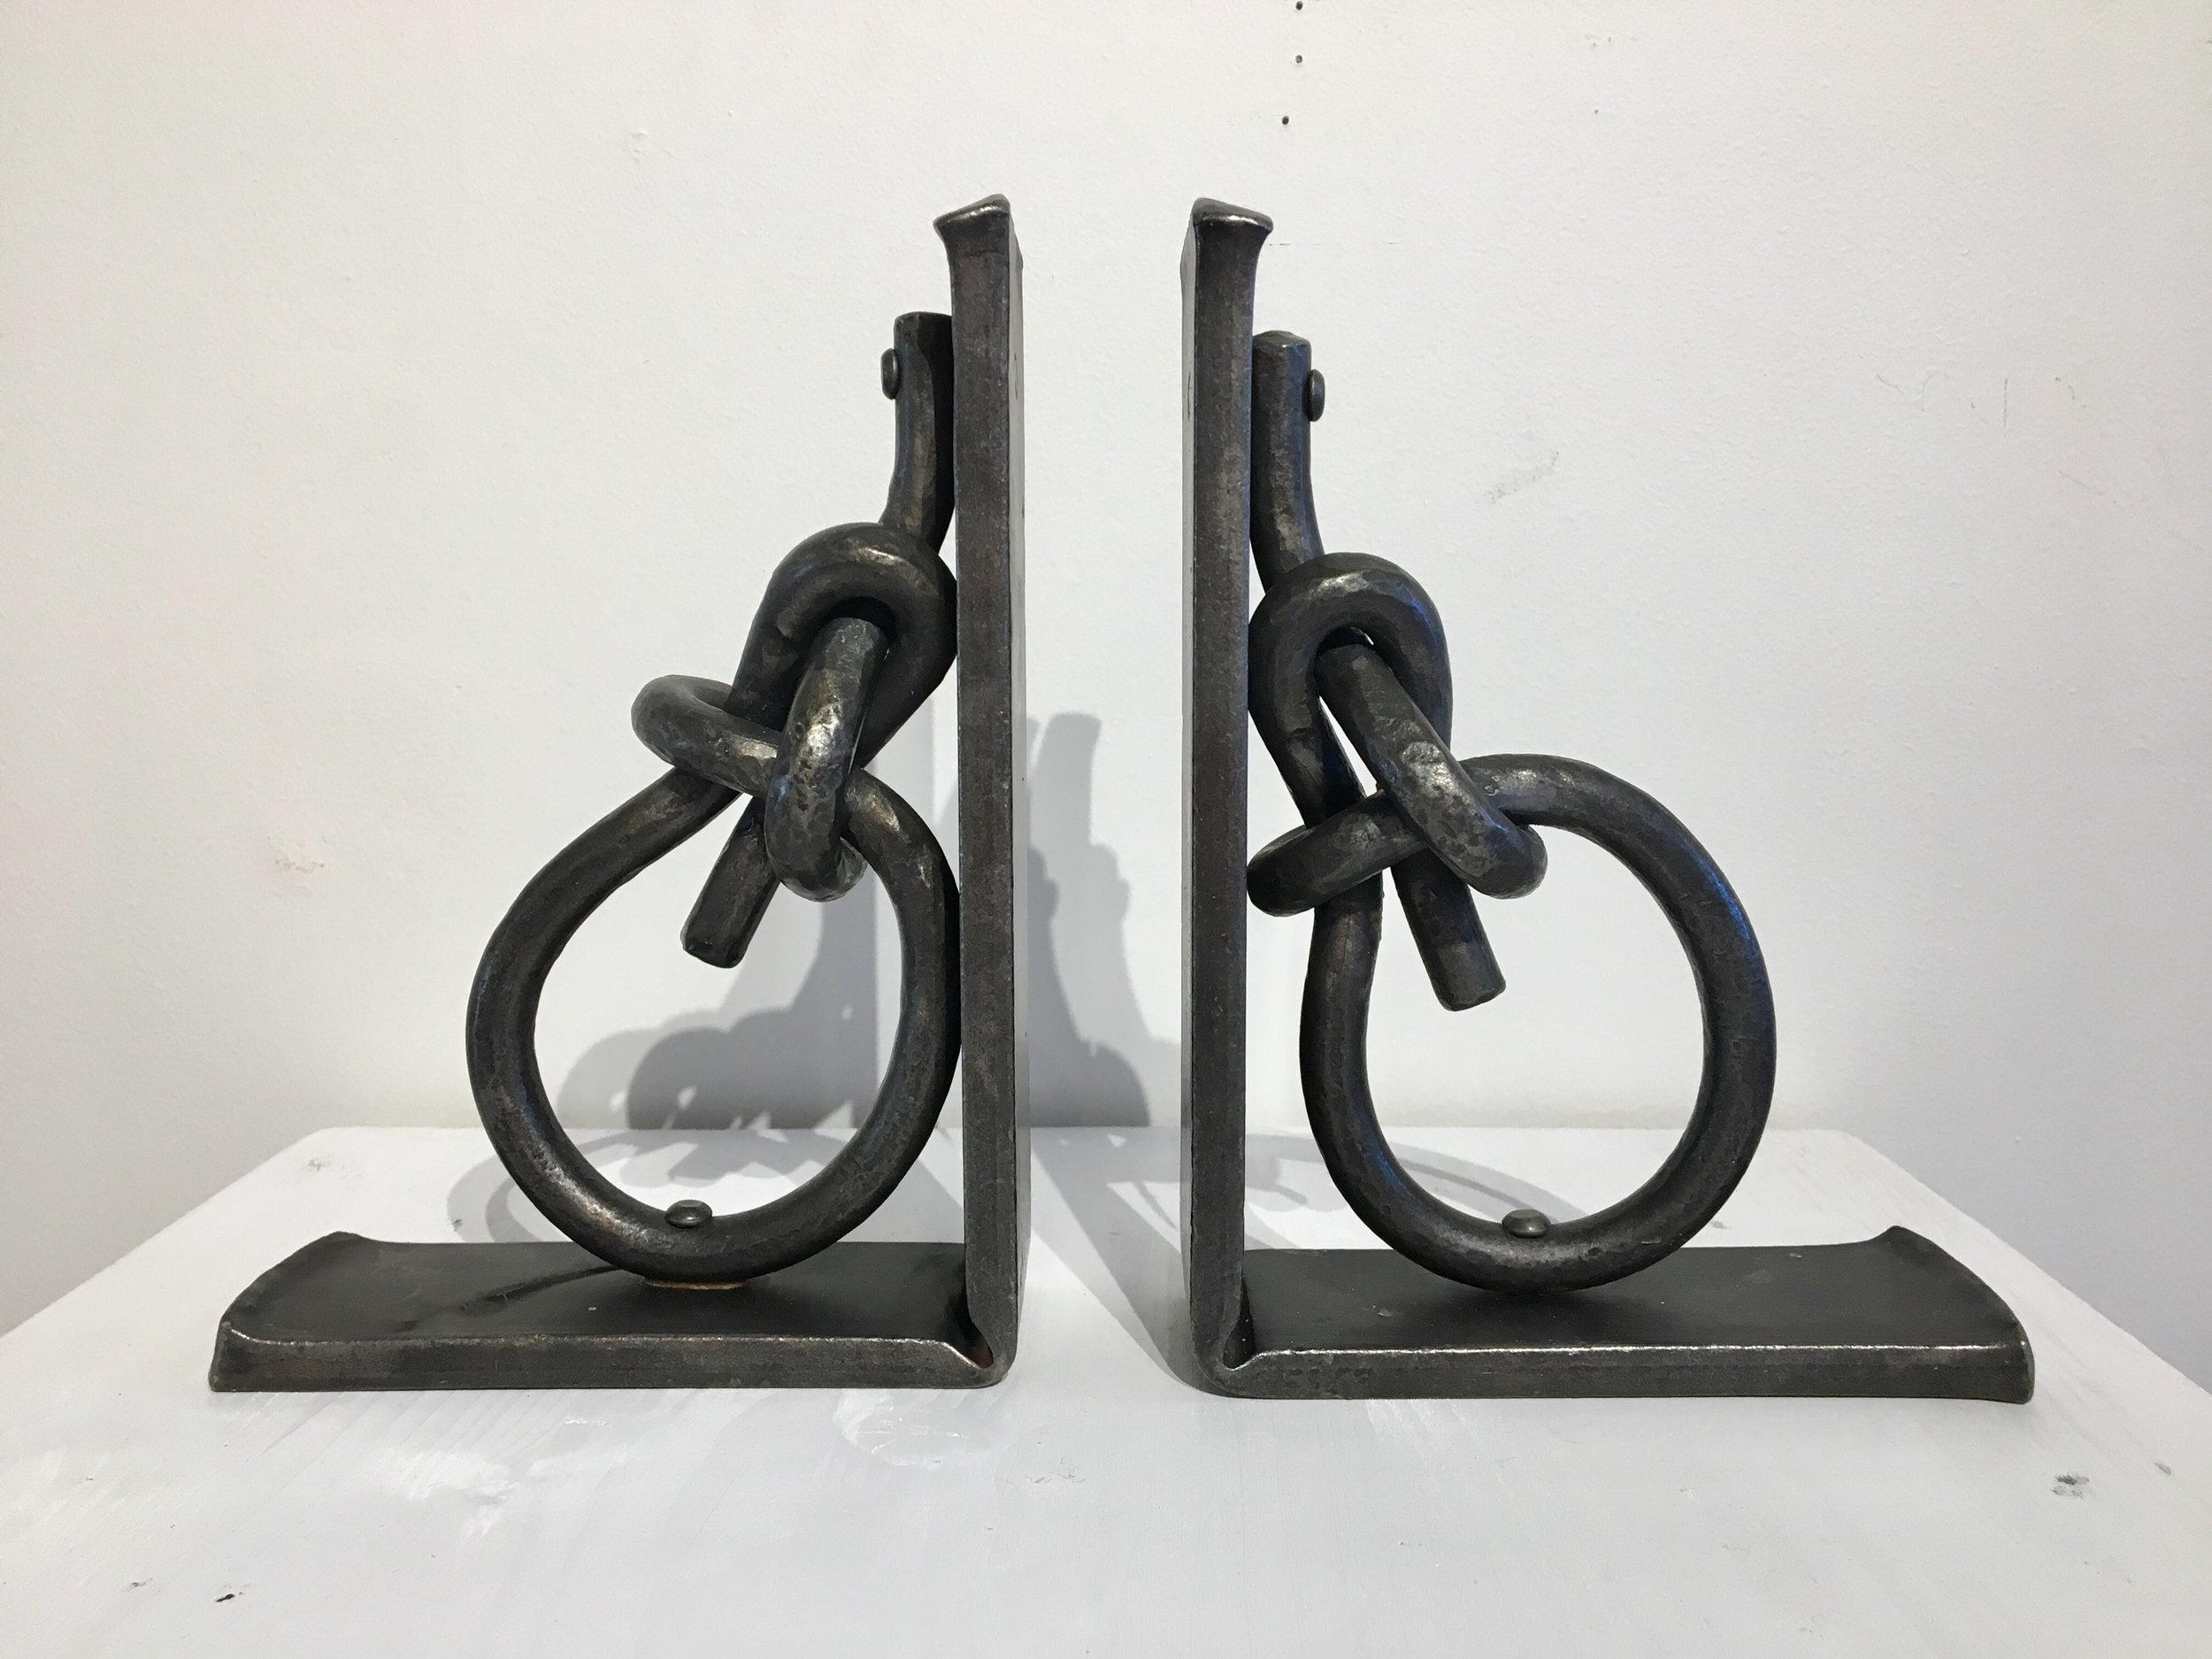 Iron Knot Bookends - 8